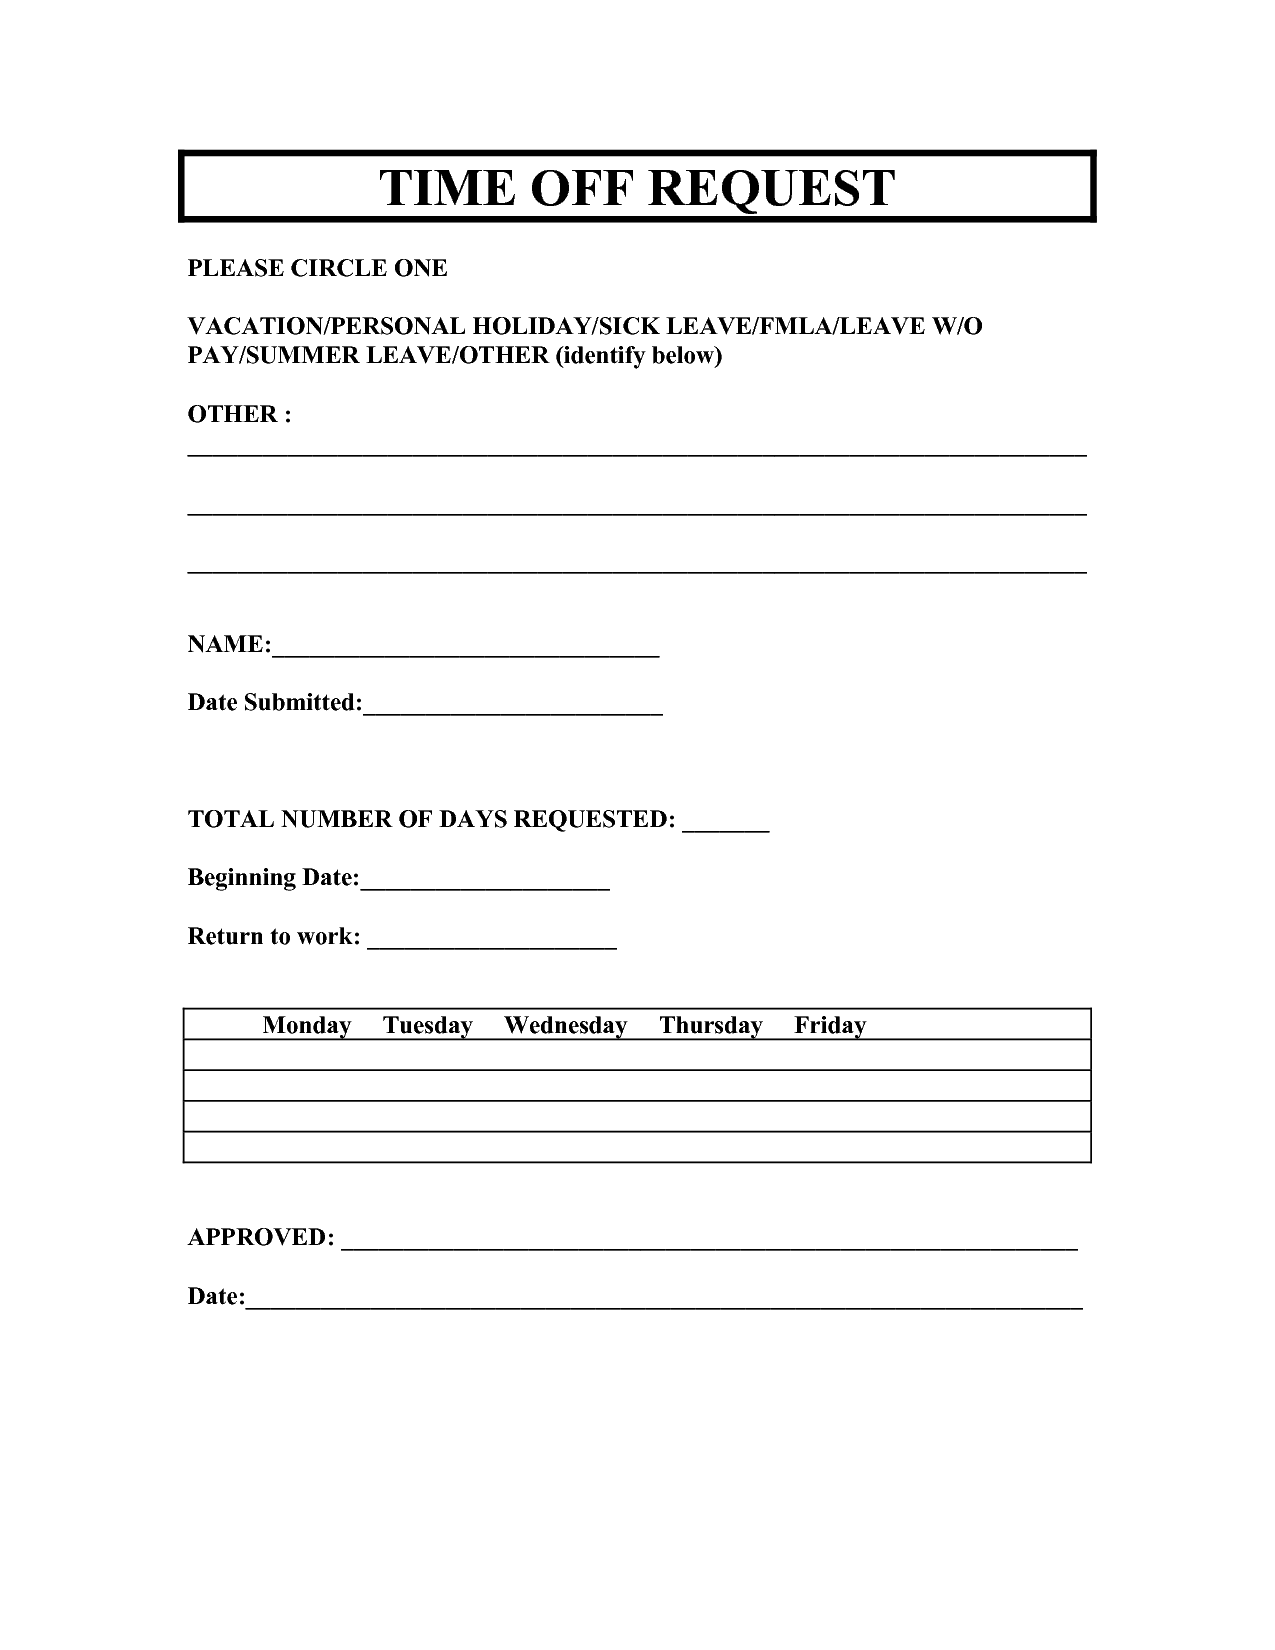 vacation request forms 2014 free printable | Printable ...